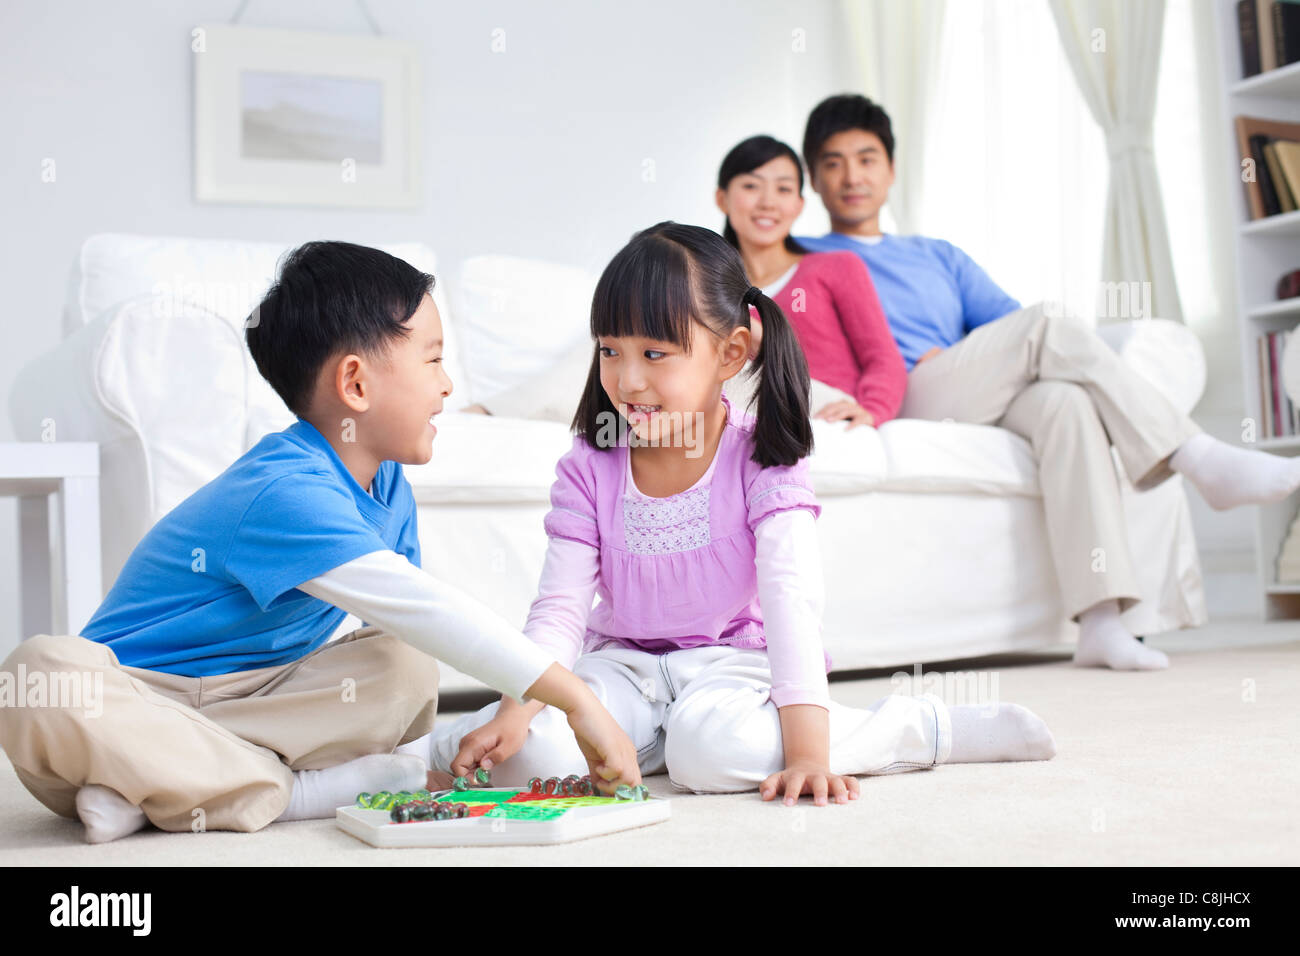 Chinese children playing with toys on the floor with parents behind them - Stock Image